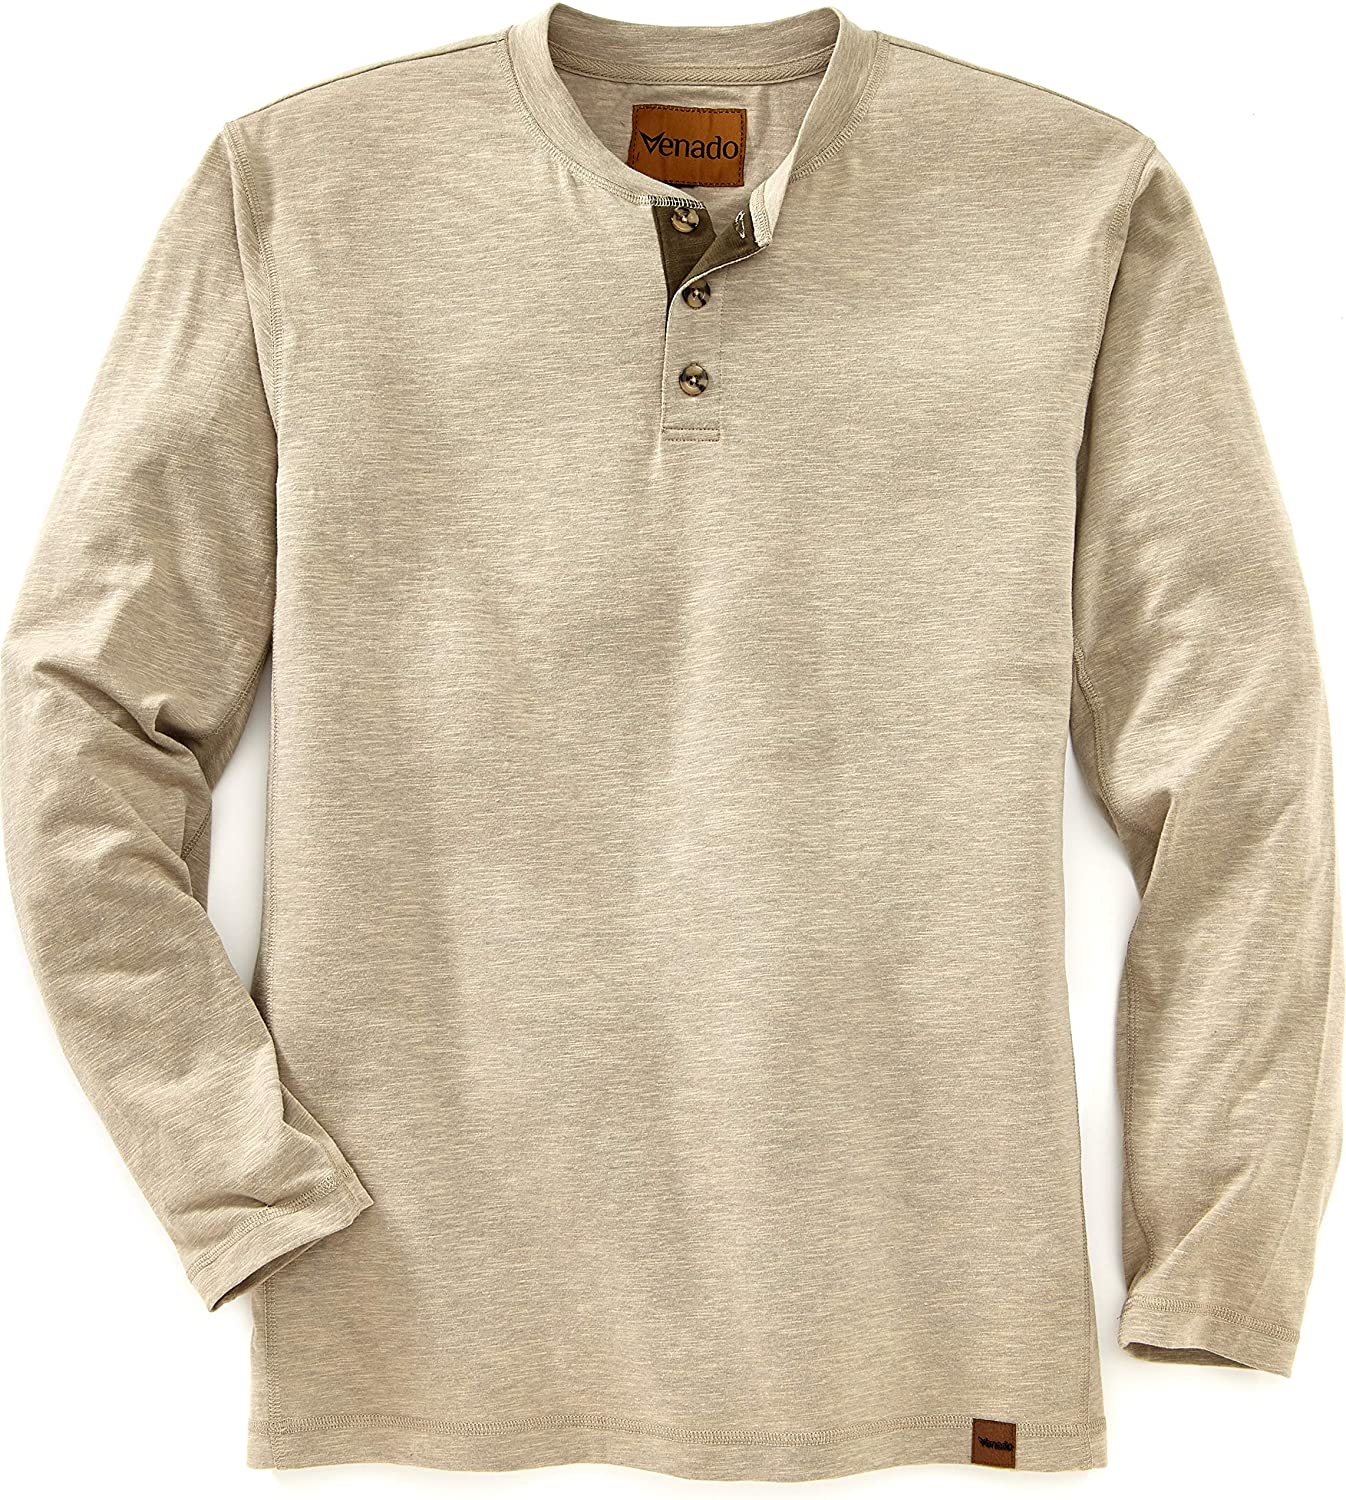 Venado Henley Long Sleeve Shirts for Men - Mens Henley with Flex Material